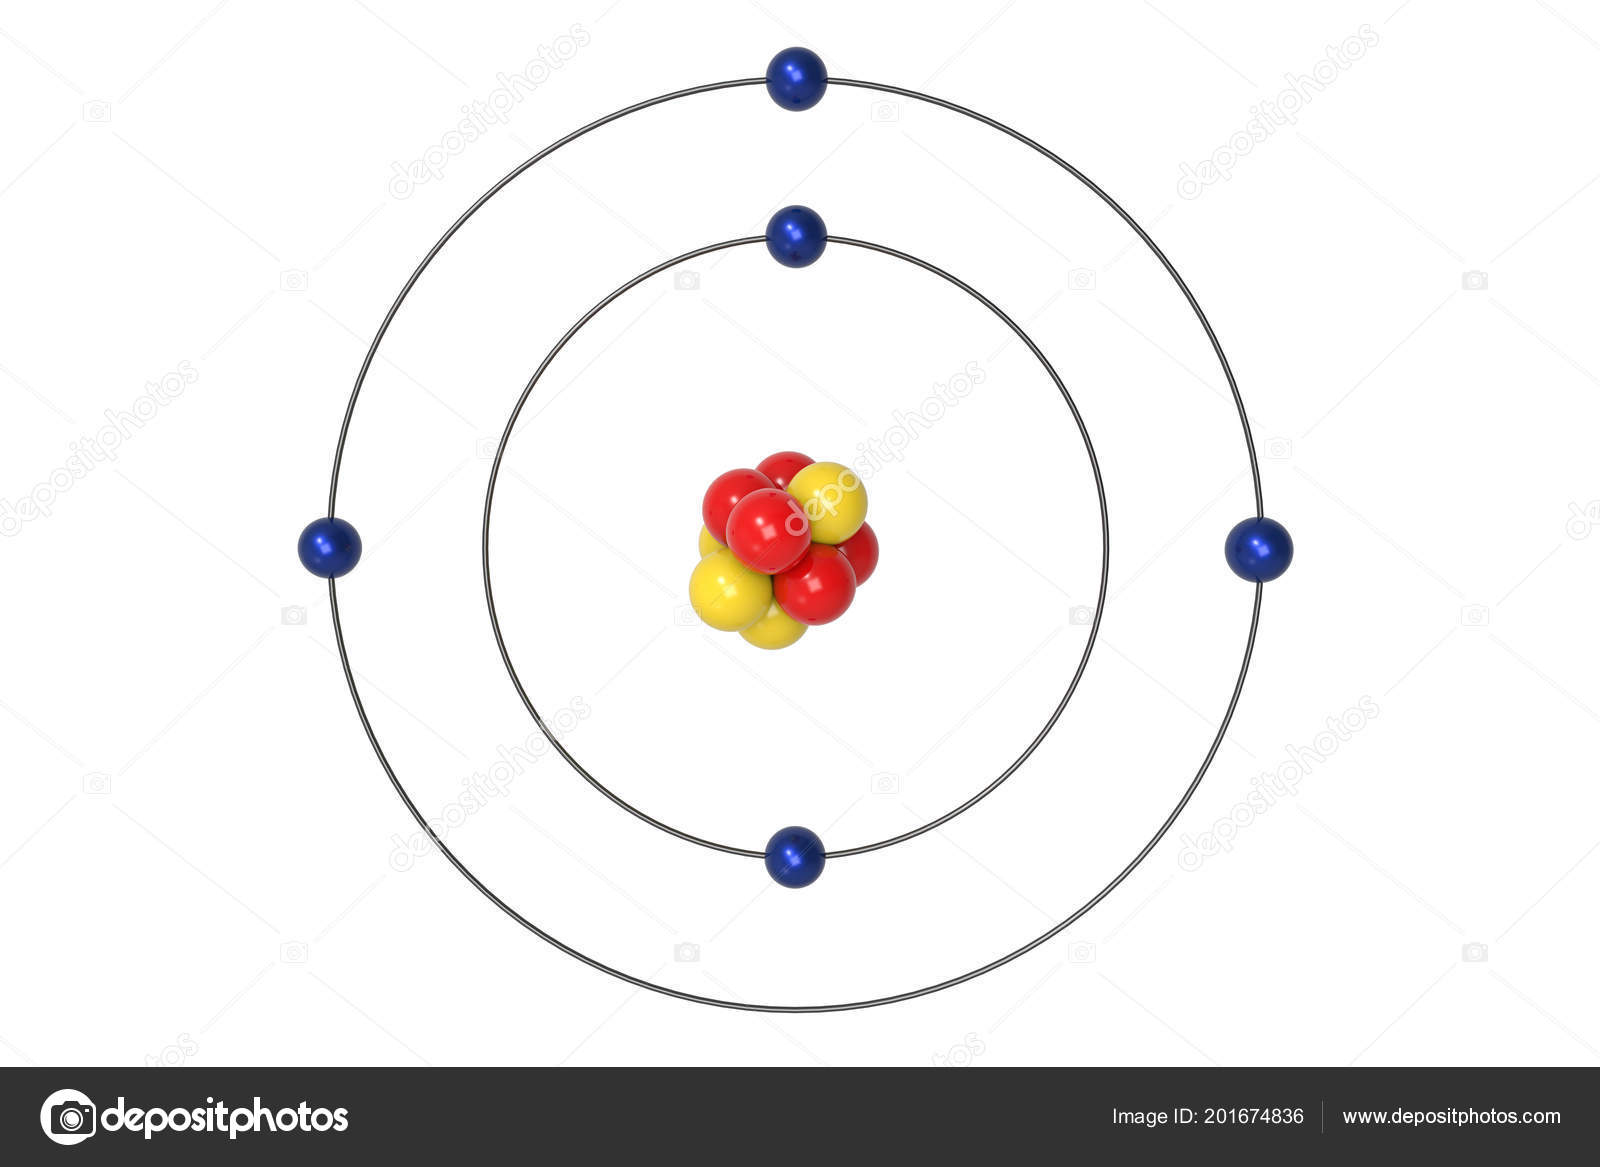 Boron Atom Bohr Model Proton Neutron Electron Illustration